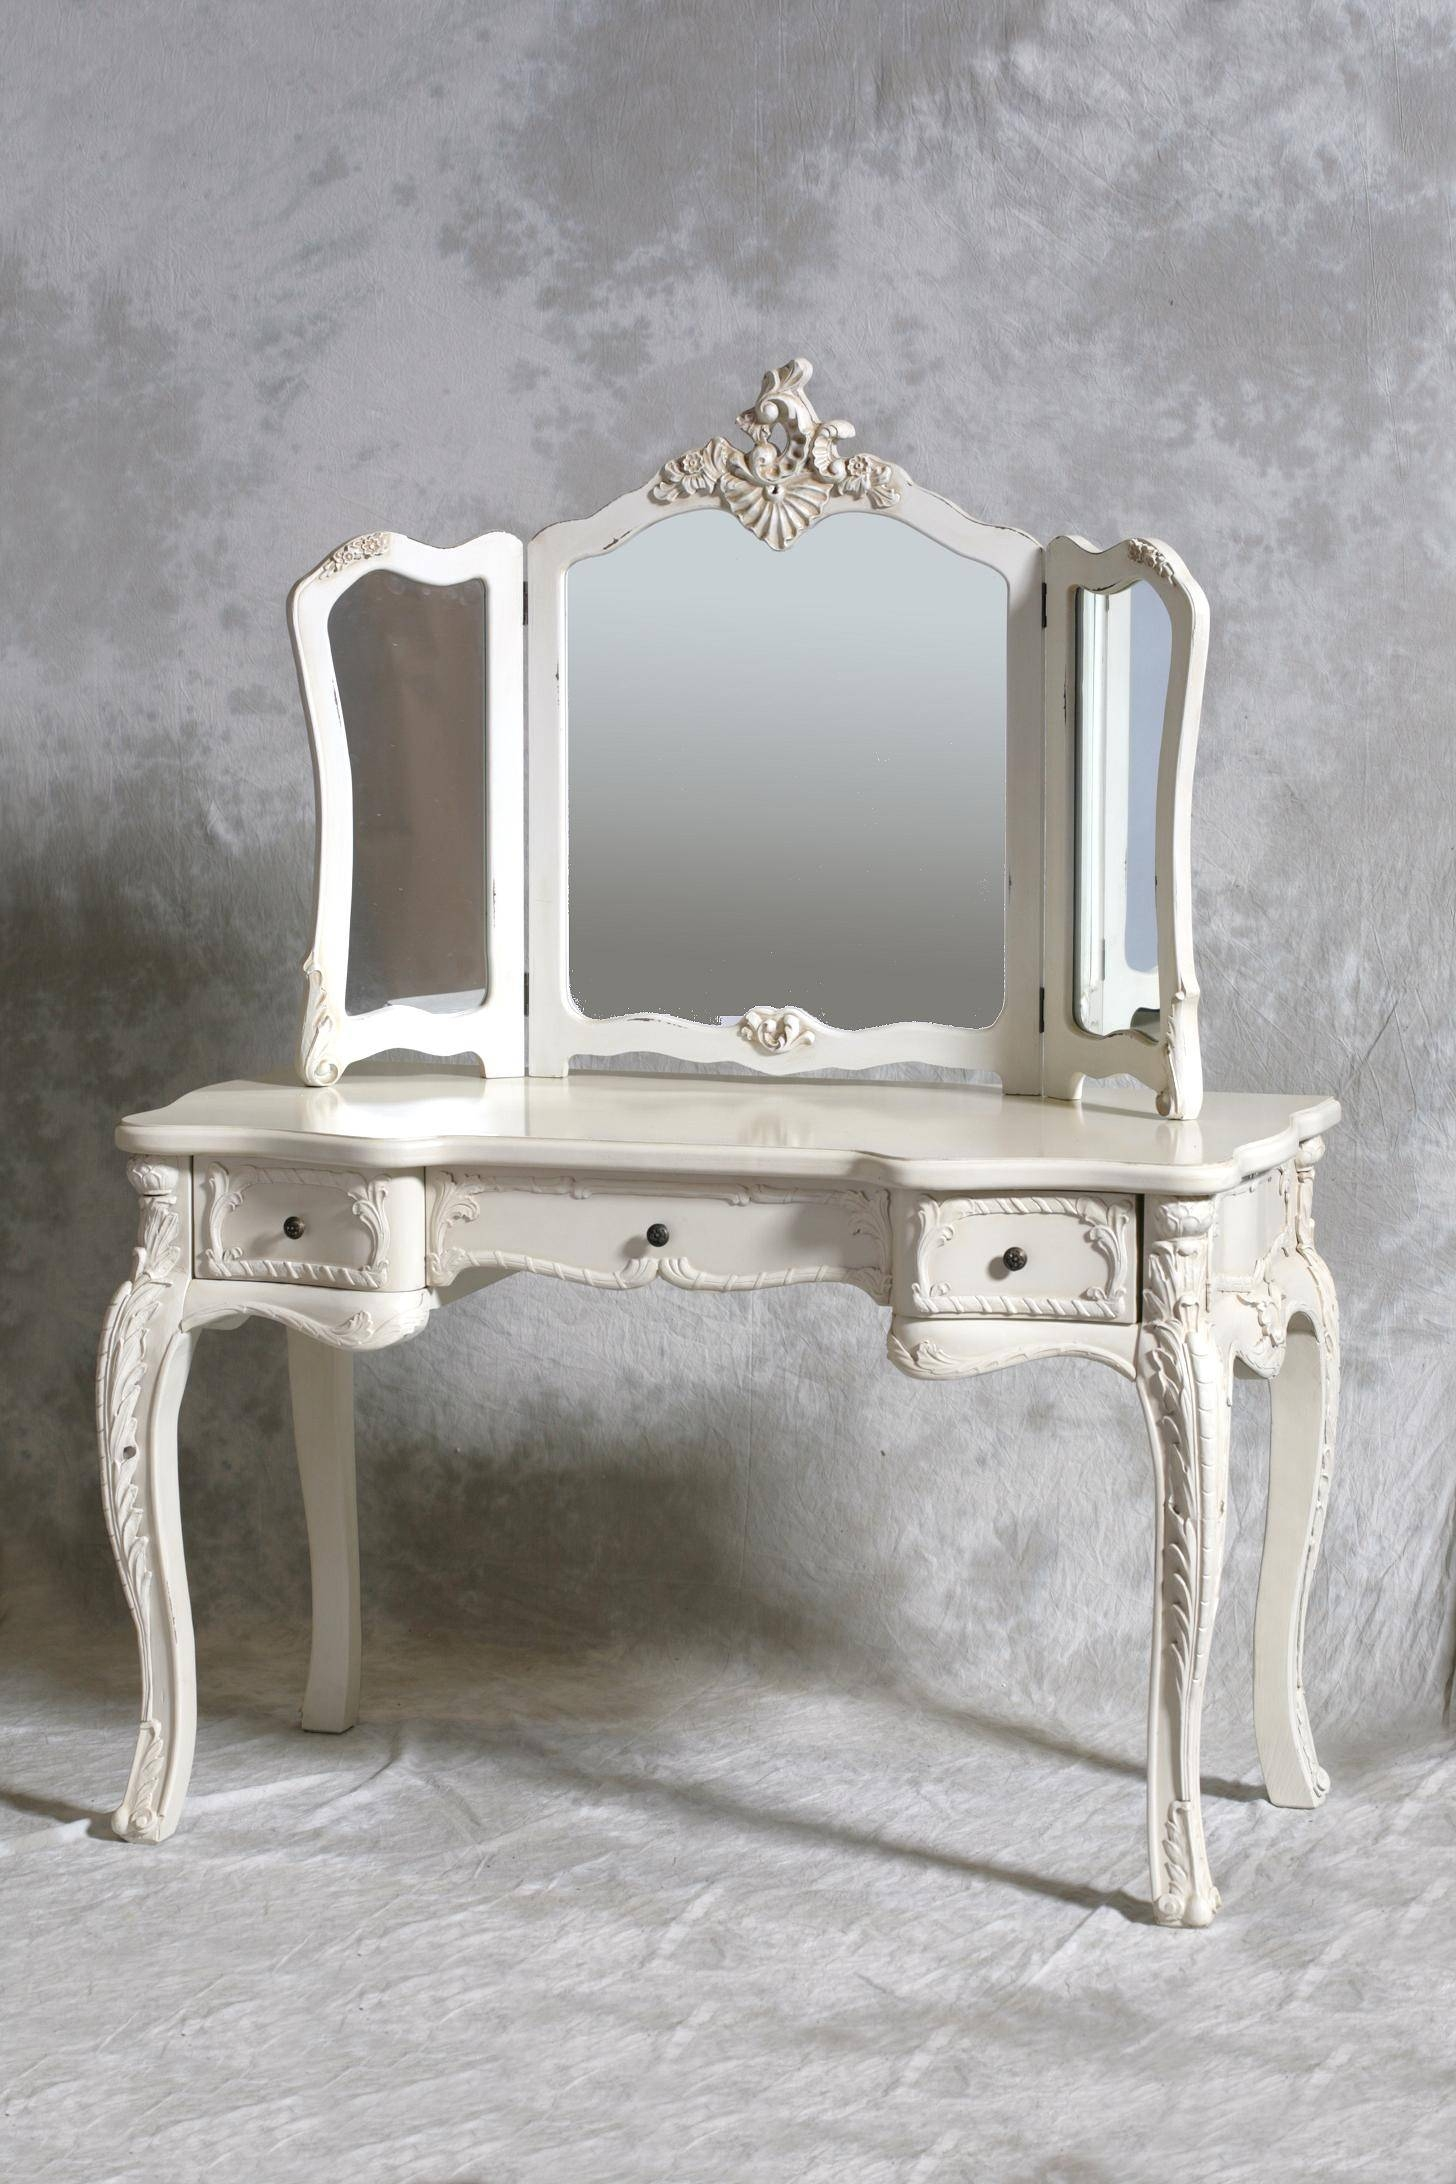 Dressing Tables With Mirrors 28 Beautiful Decoration Also Modern pertaining to Decorative Dressing Table Mirrors (Image 11 of 25)